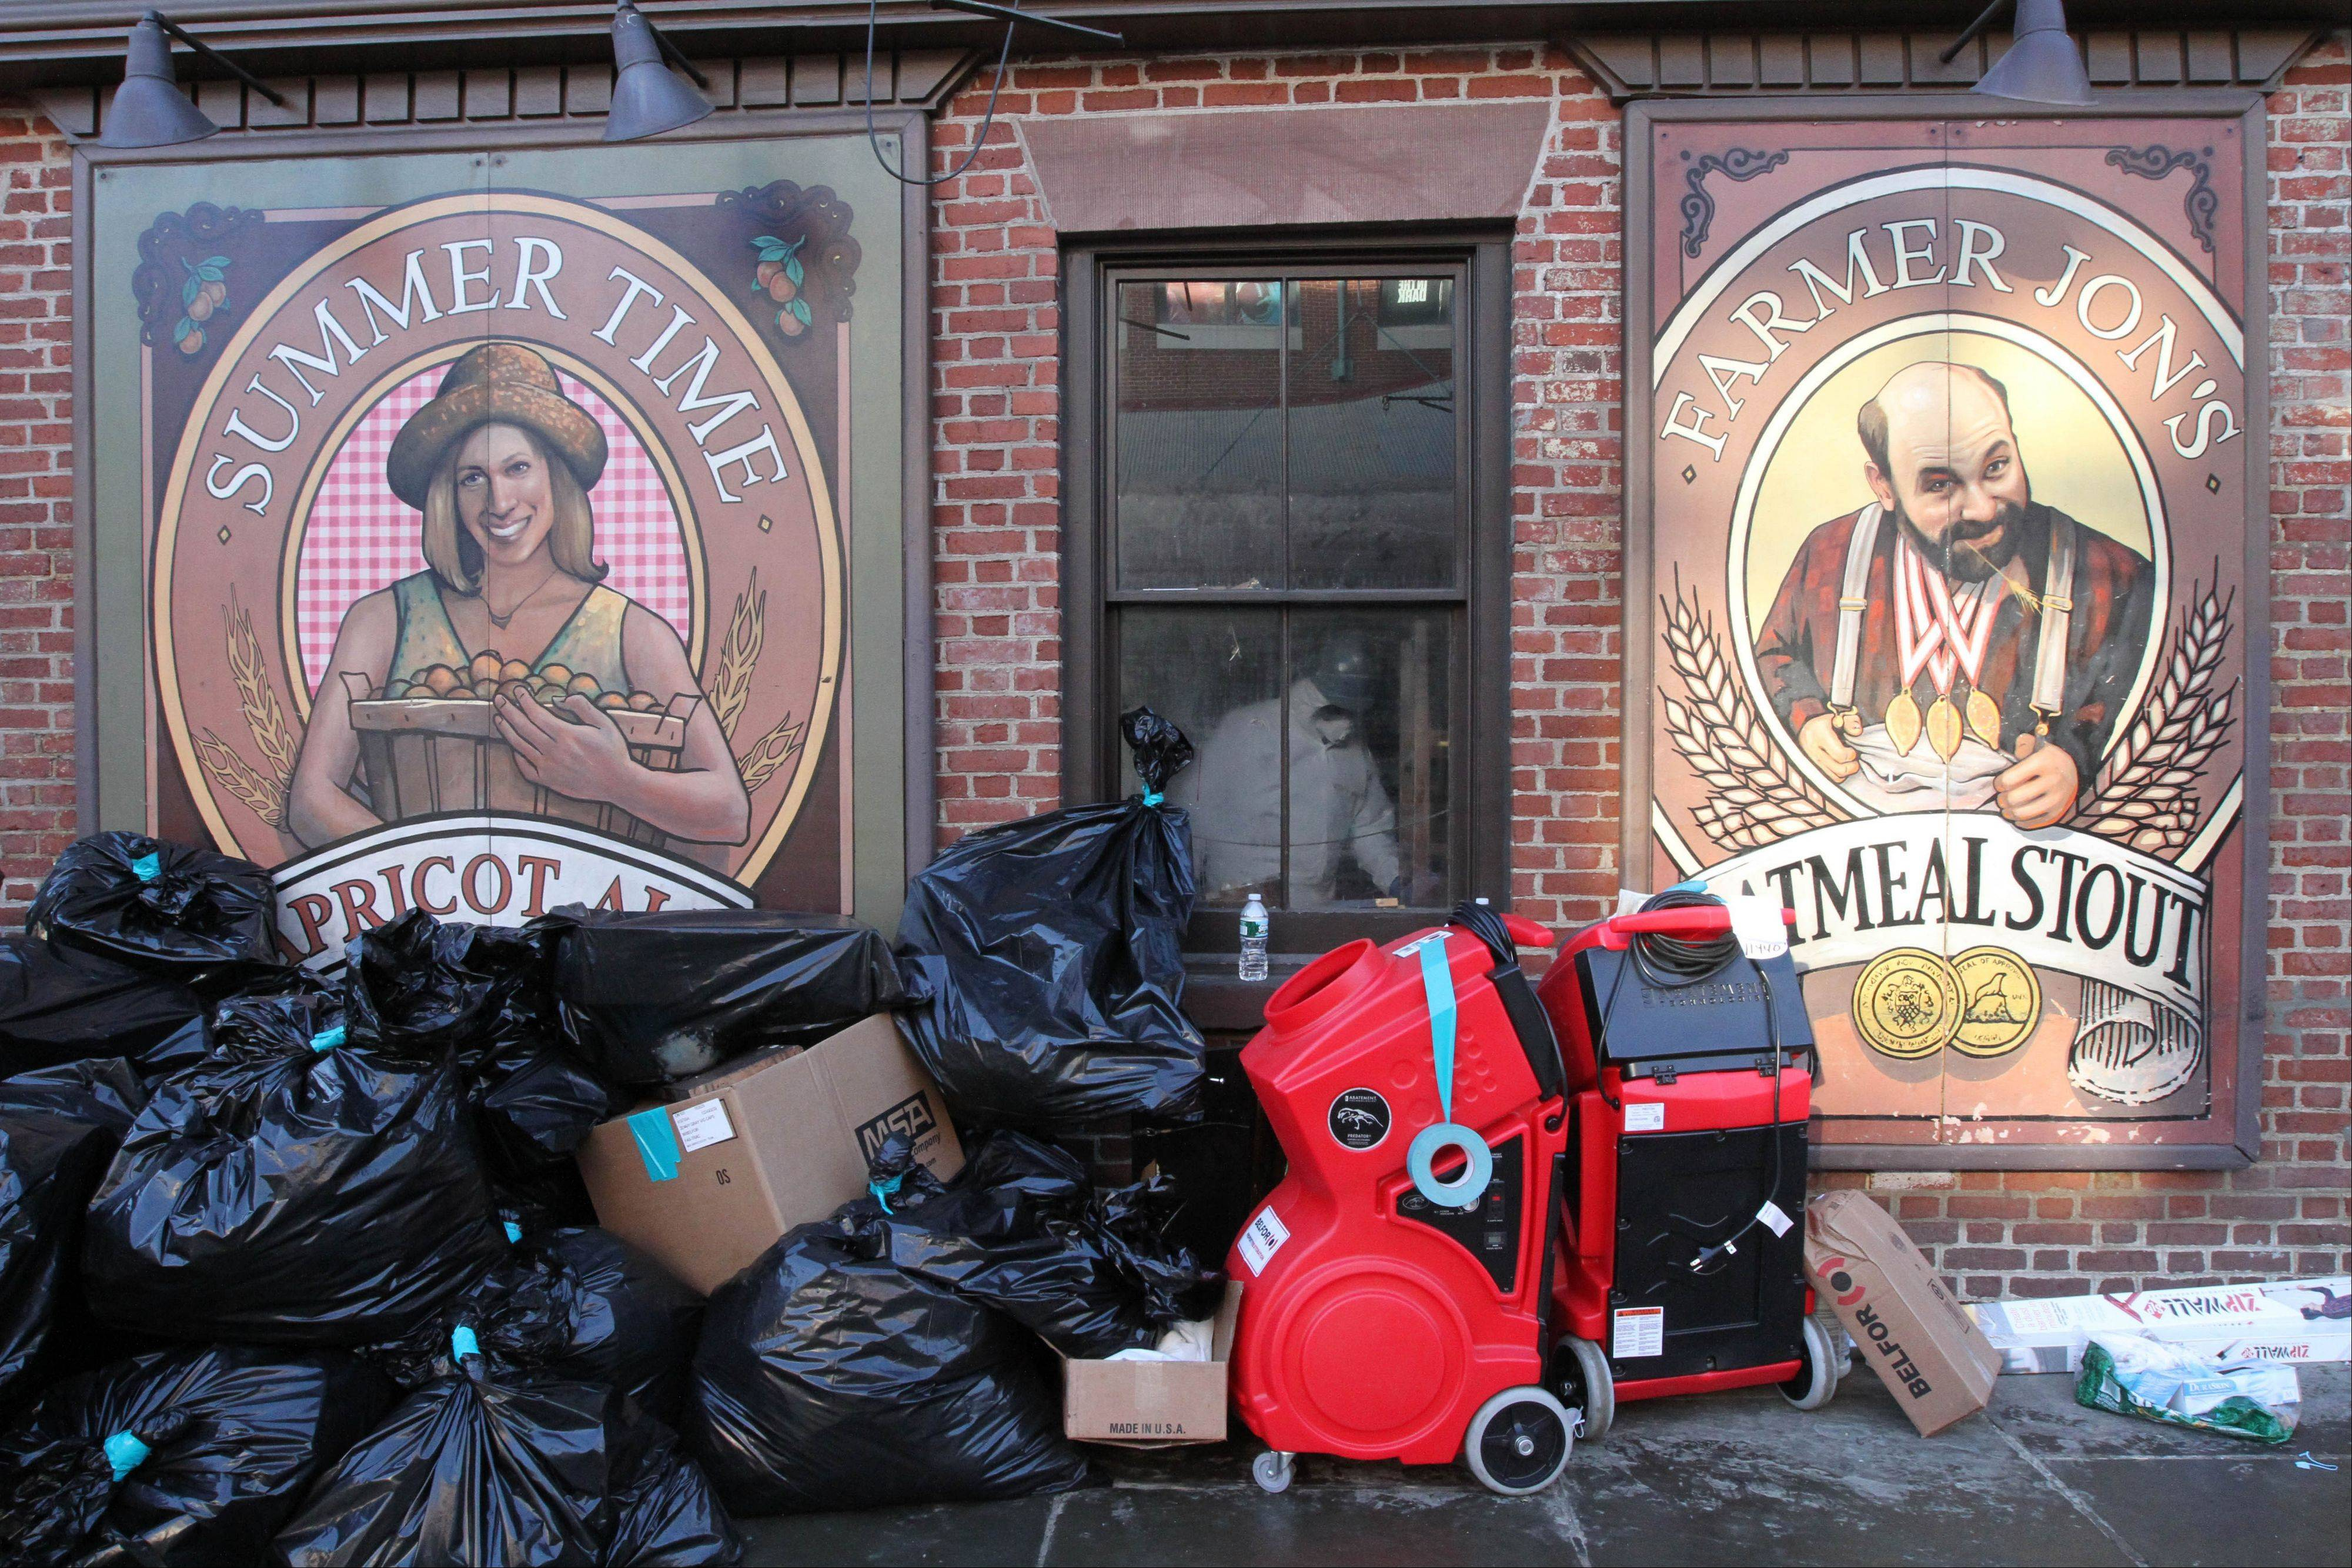 A worker wearing protective clothing, behind window, toils inside the Heartland Brewery at New York�s South Street Seaport, as bags of garbage from the Superstorm Sandy cleanup sit out front. The South Street Seaport, a popular tourist destination, remains a ghost town since the storm.